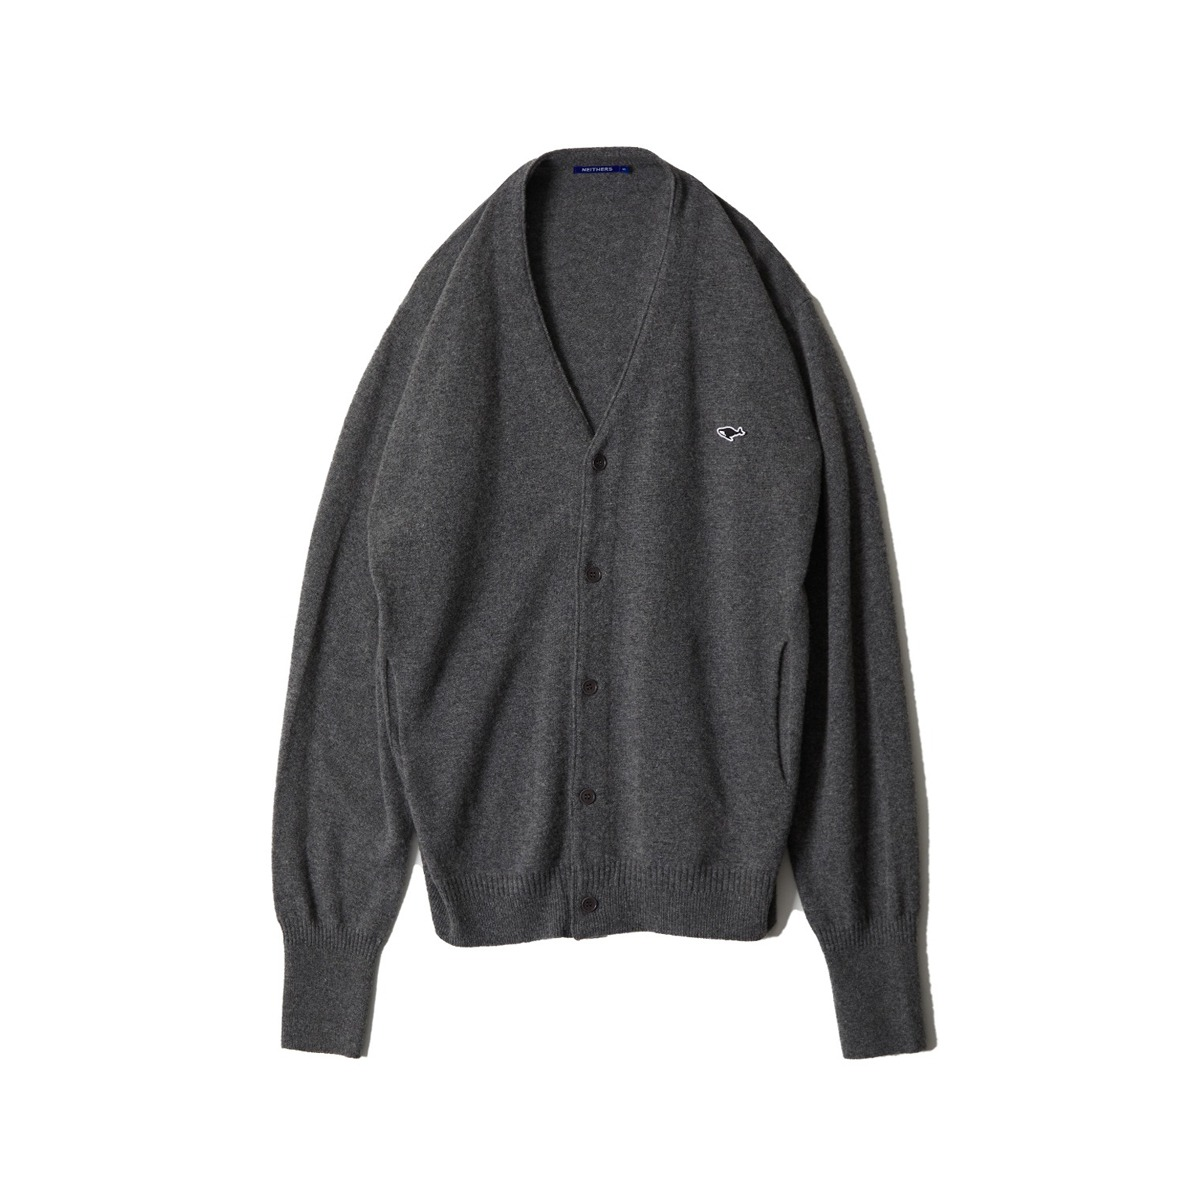 [NEITHERS] MERINO WOOL CARDIGAN 'CHARCOAL'